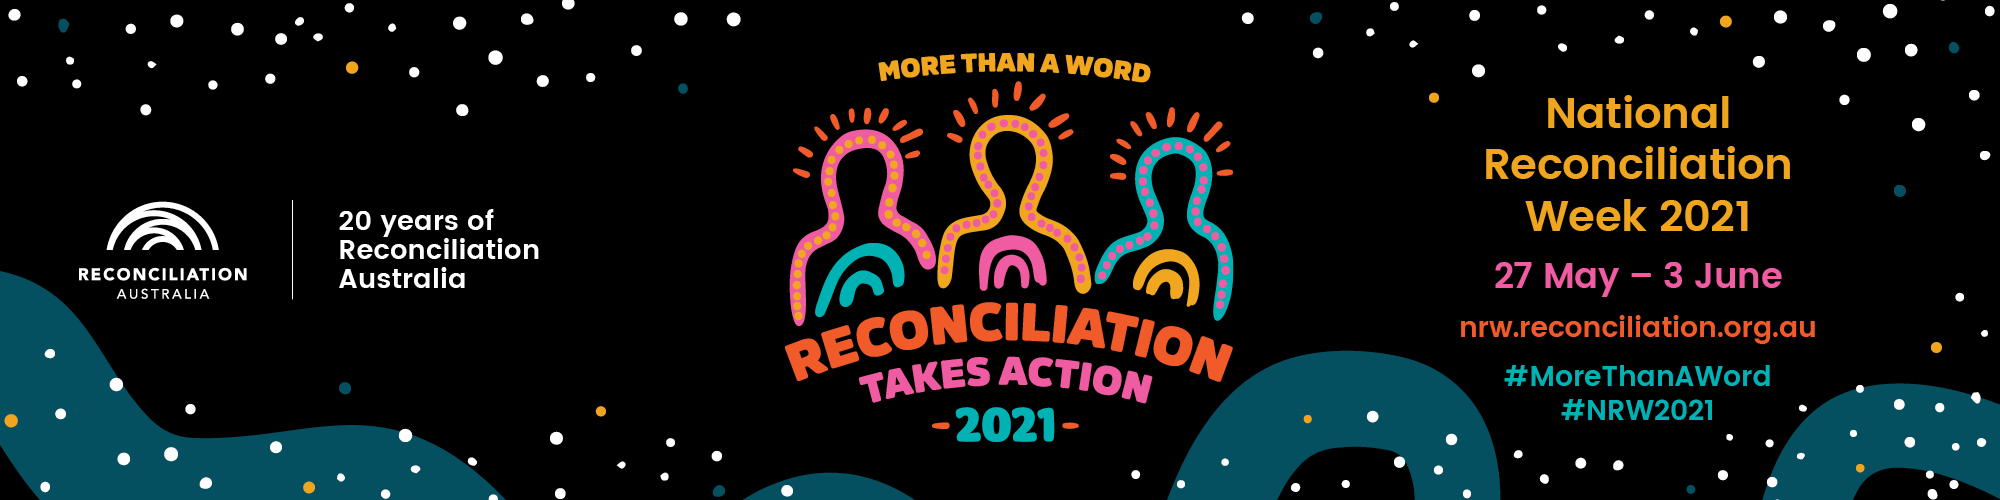 Thursday the 27th of May marks the beginning of National Reconciliation week for 2021.